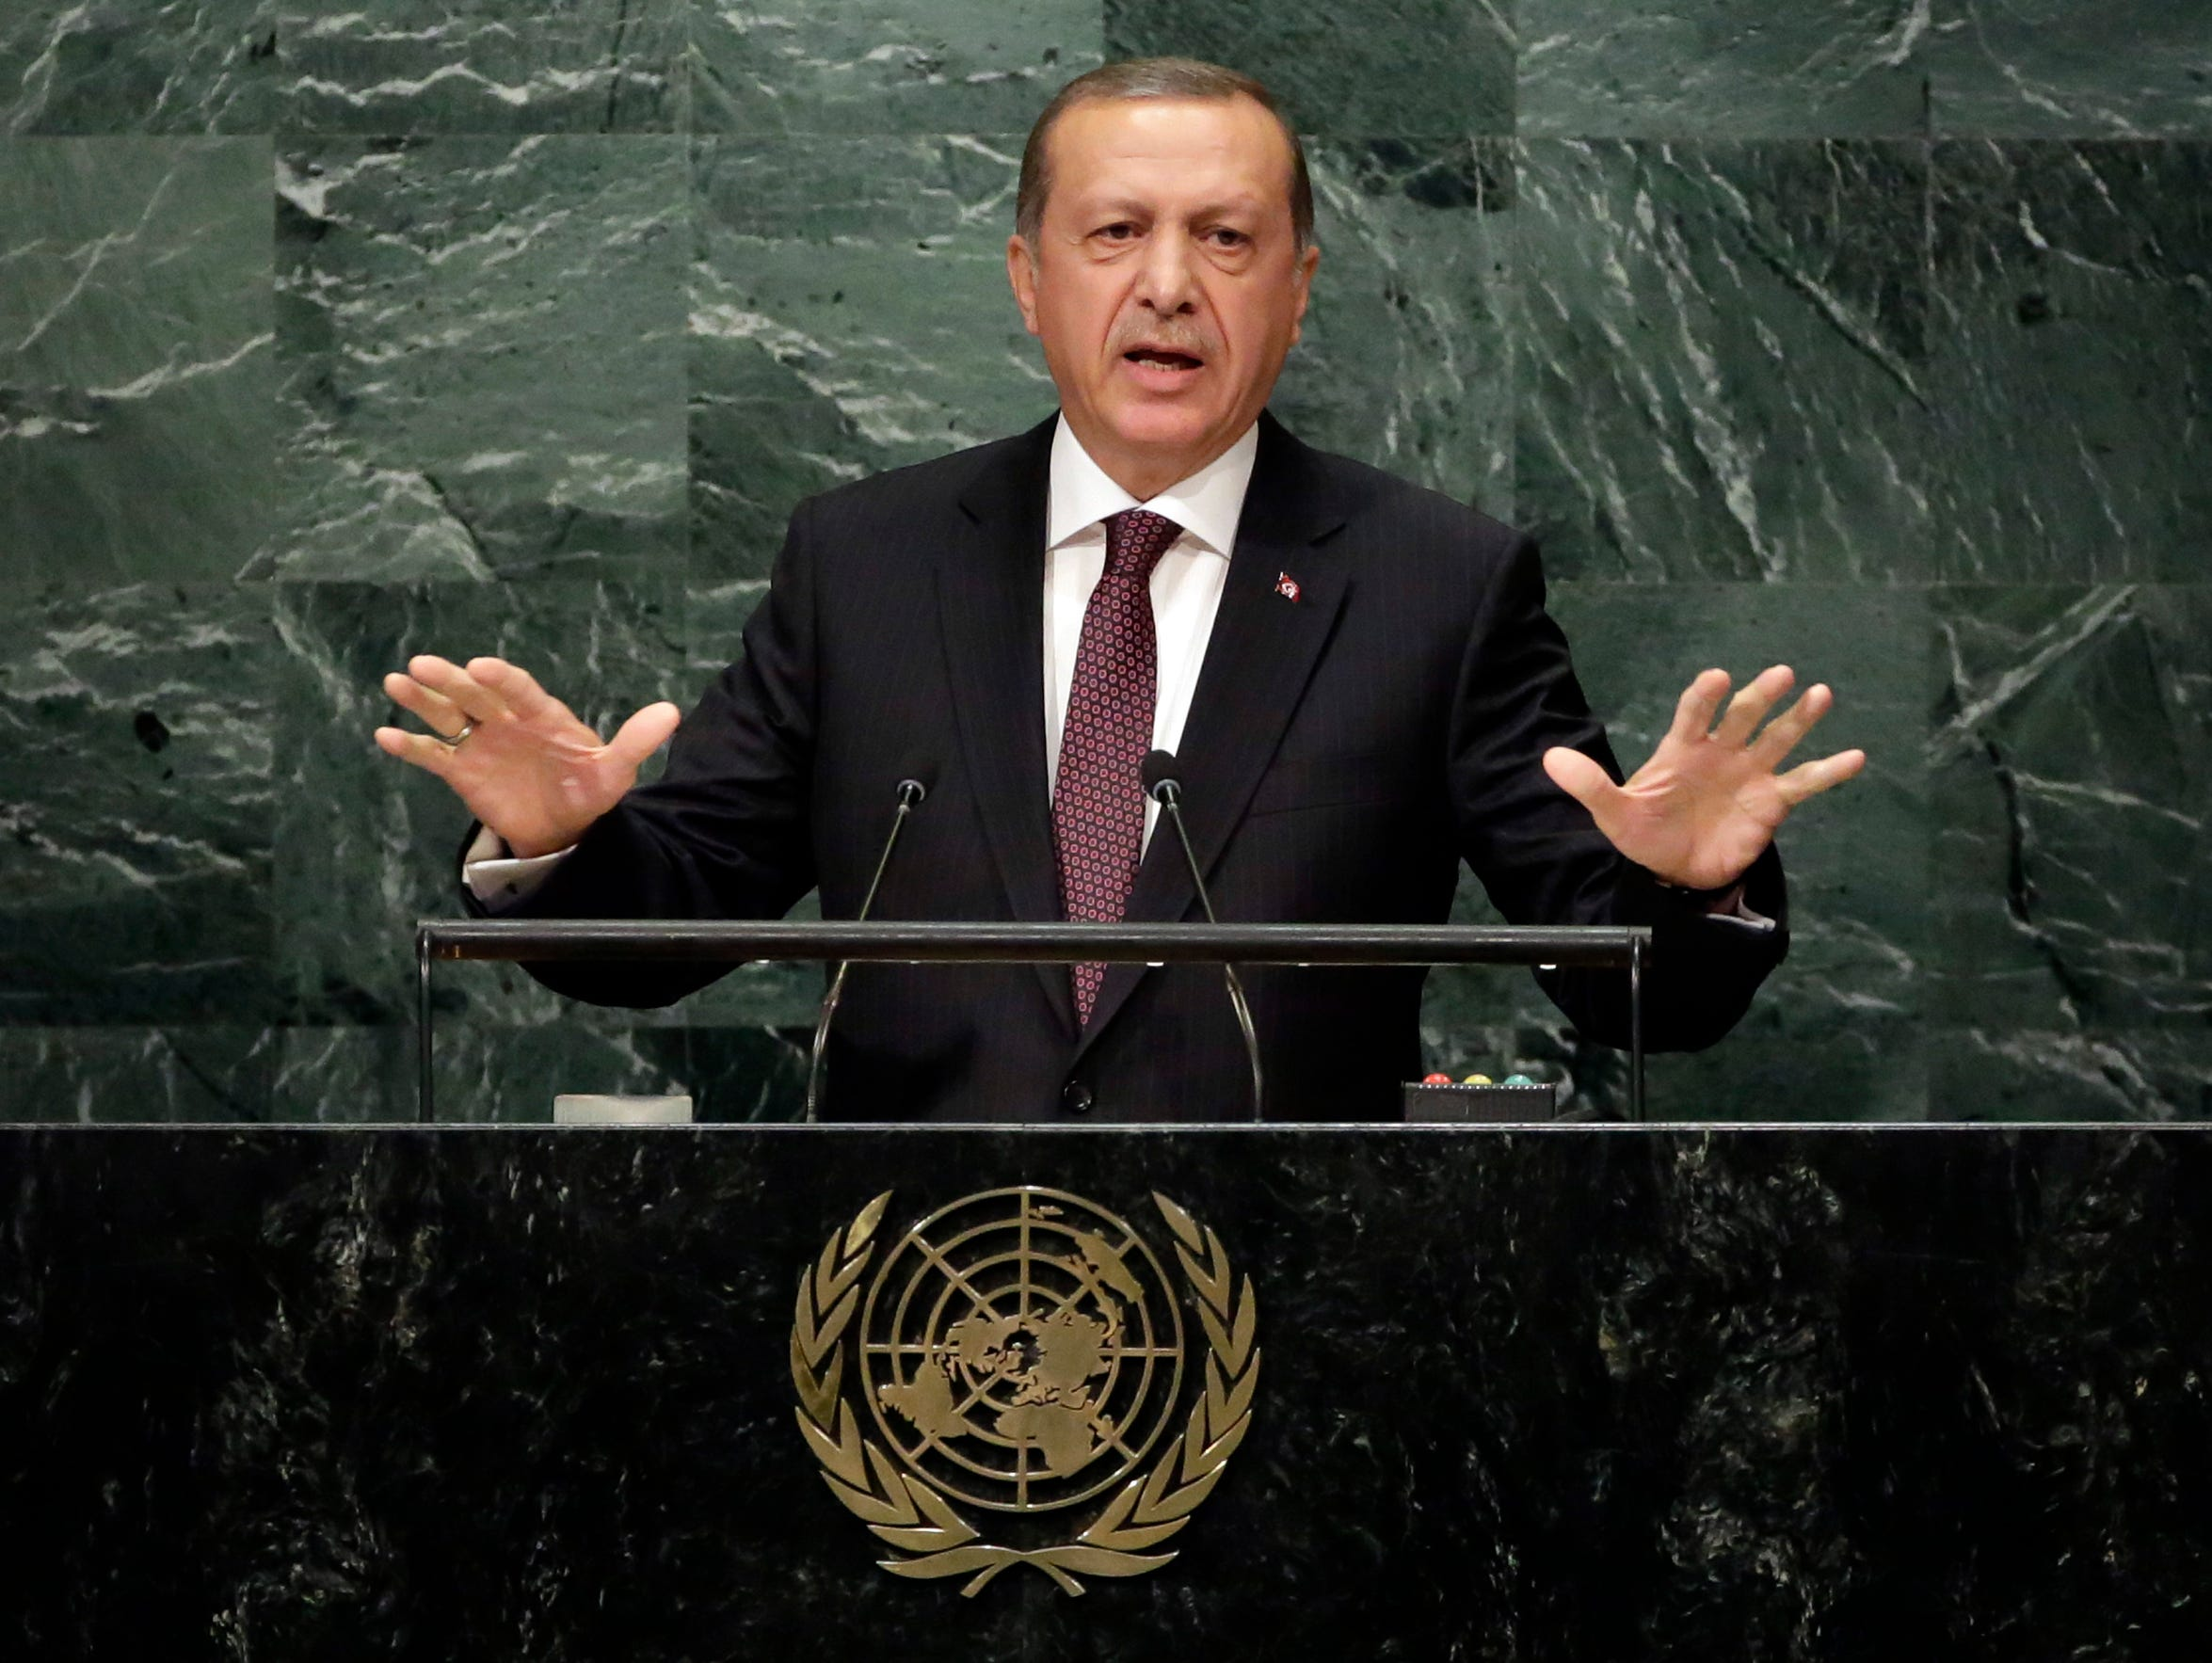 Turkey's President Recep Tayyip Erdogan addresses the